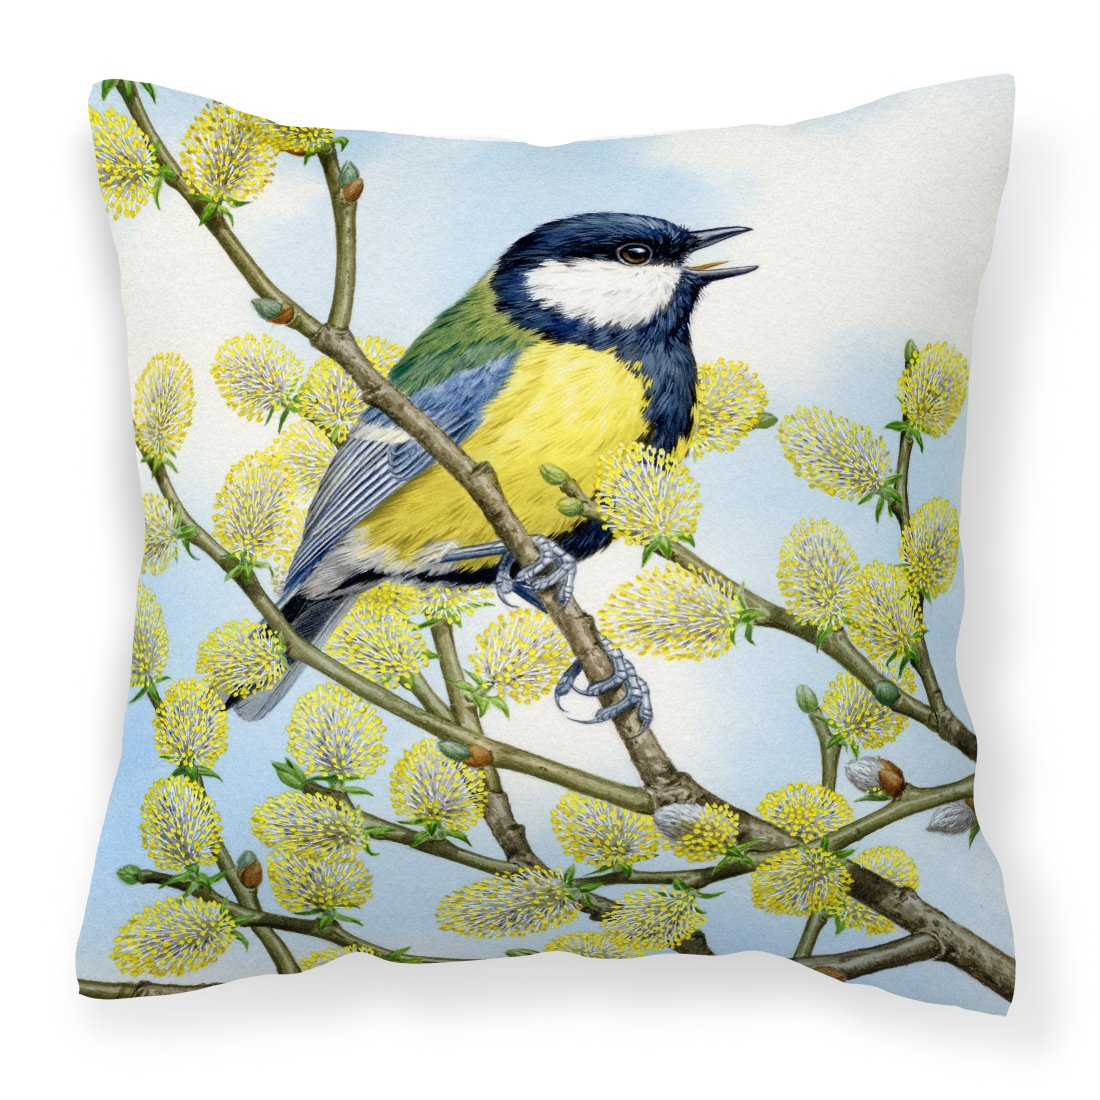 Buy this Eurasian Blue Tit by Sarah Adams Canvas Decorative Pillow